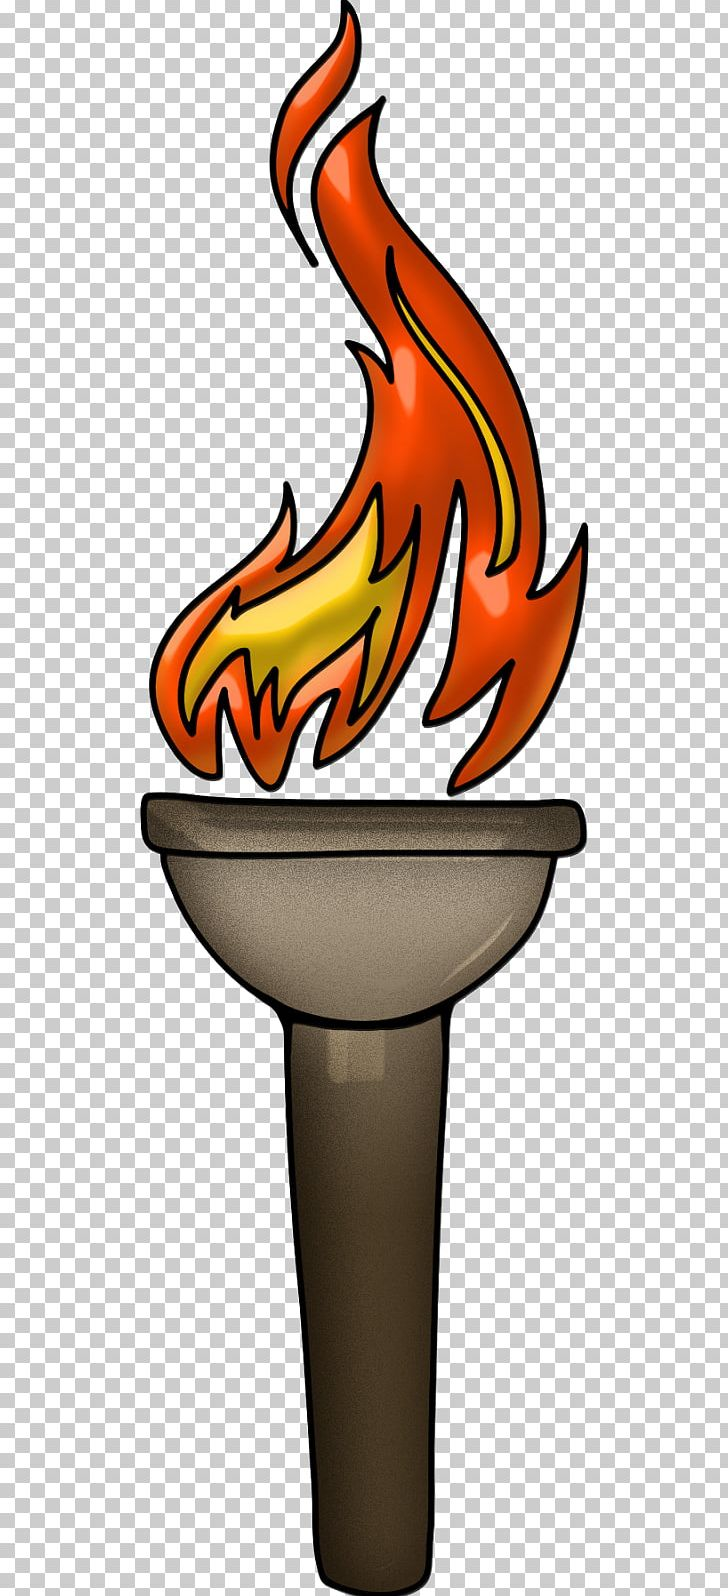 Free olympic games clipart graphic free library Olympic Games 2018 Winter Olympics Torch Relay PNG, Clipart, 2018 ... graphic free library